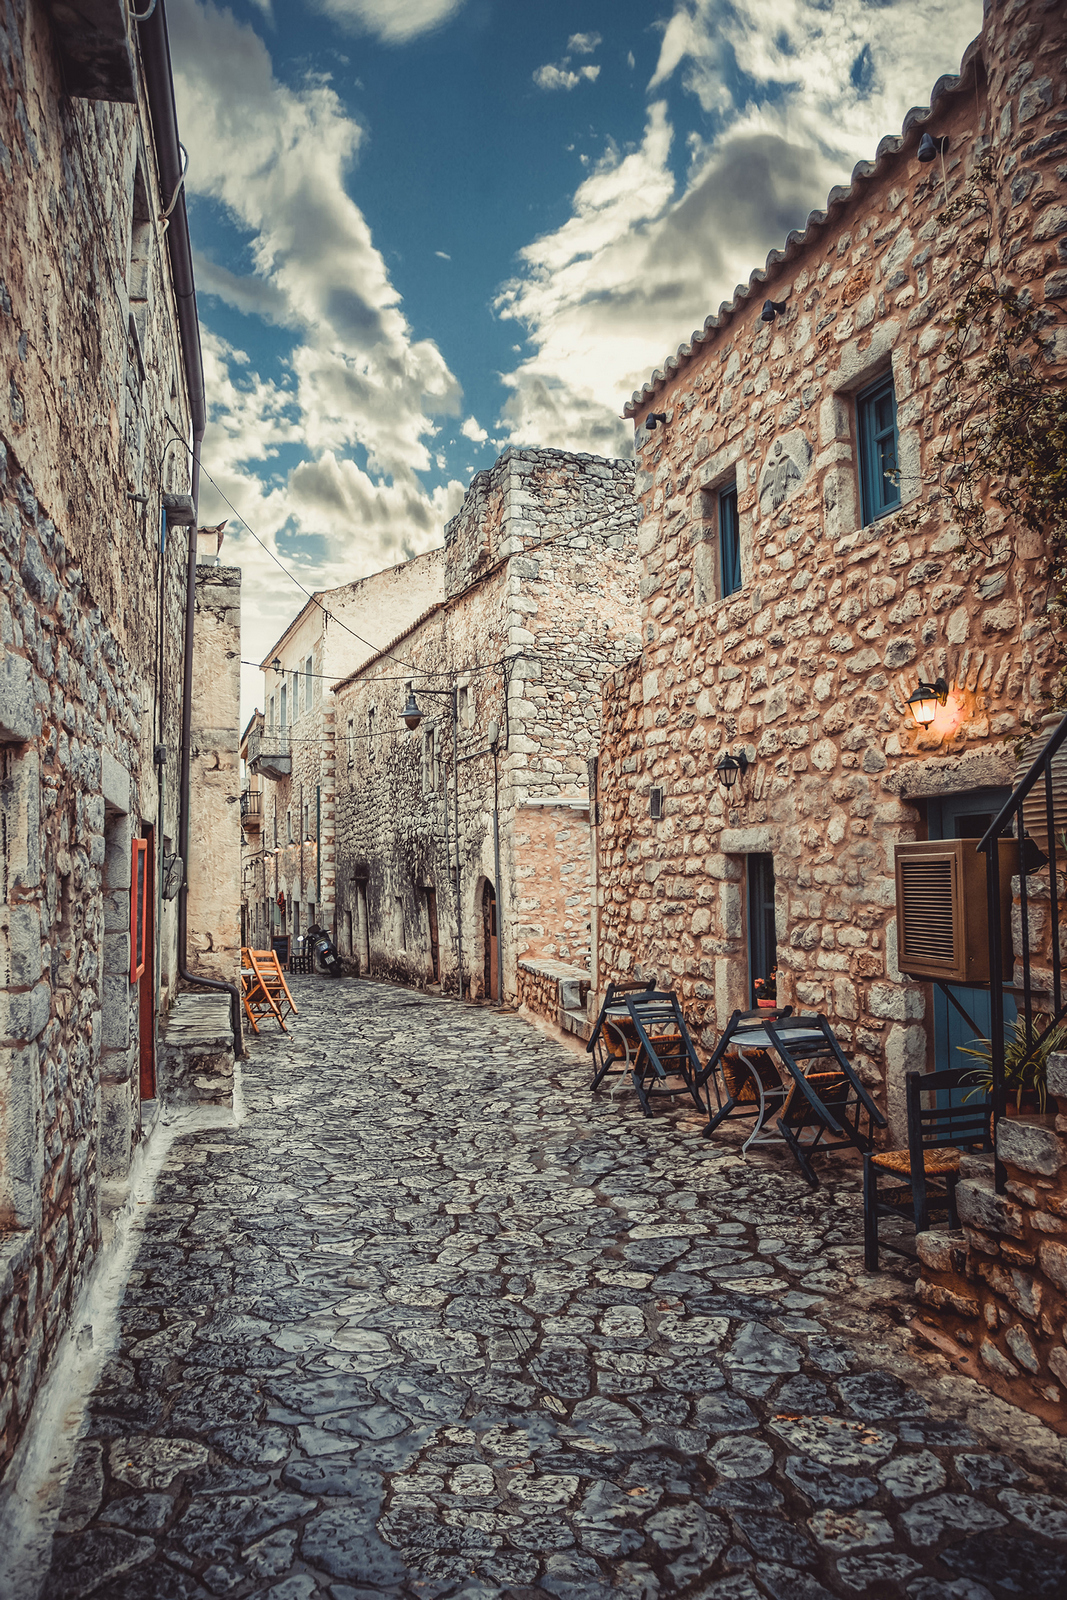 areopoli stone paved street